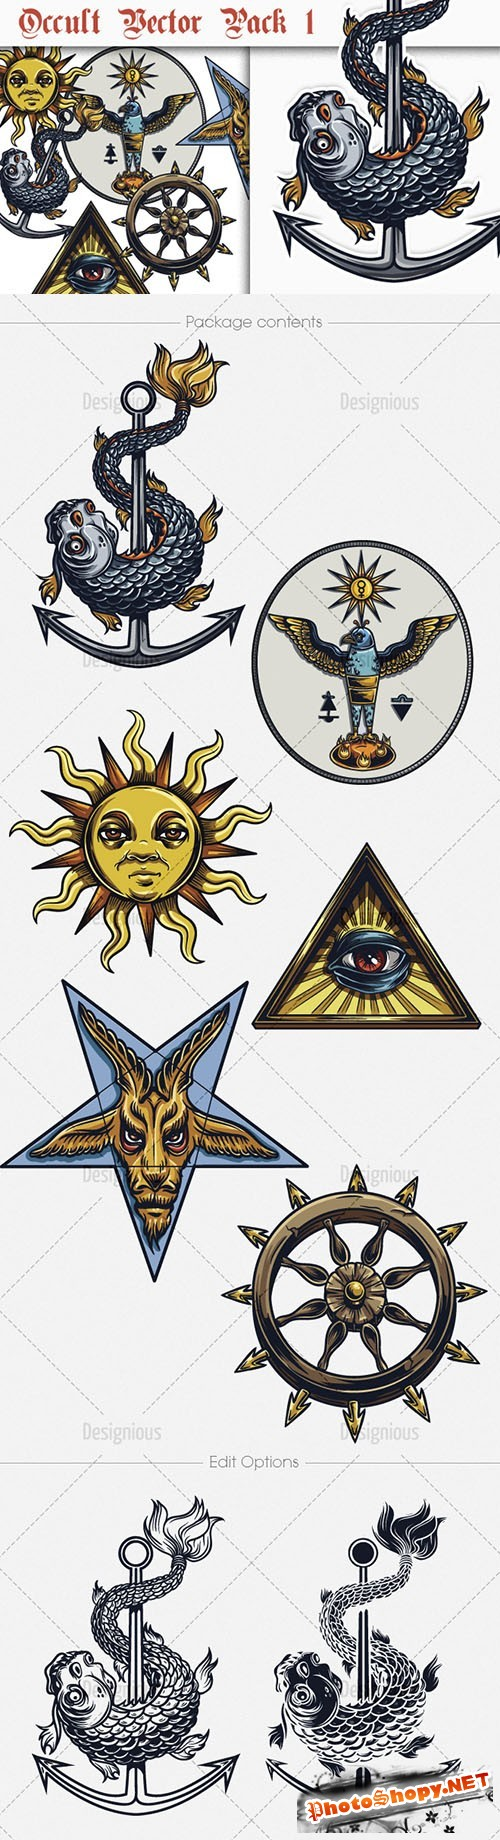 Occult Vector Illustrations Pack 1